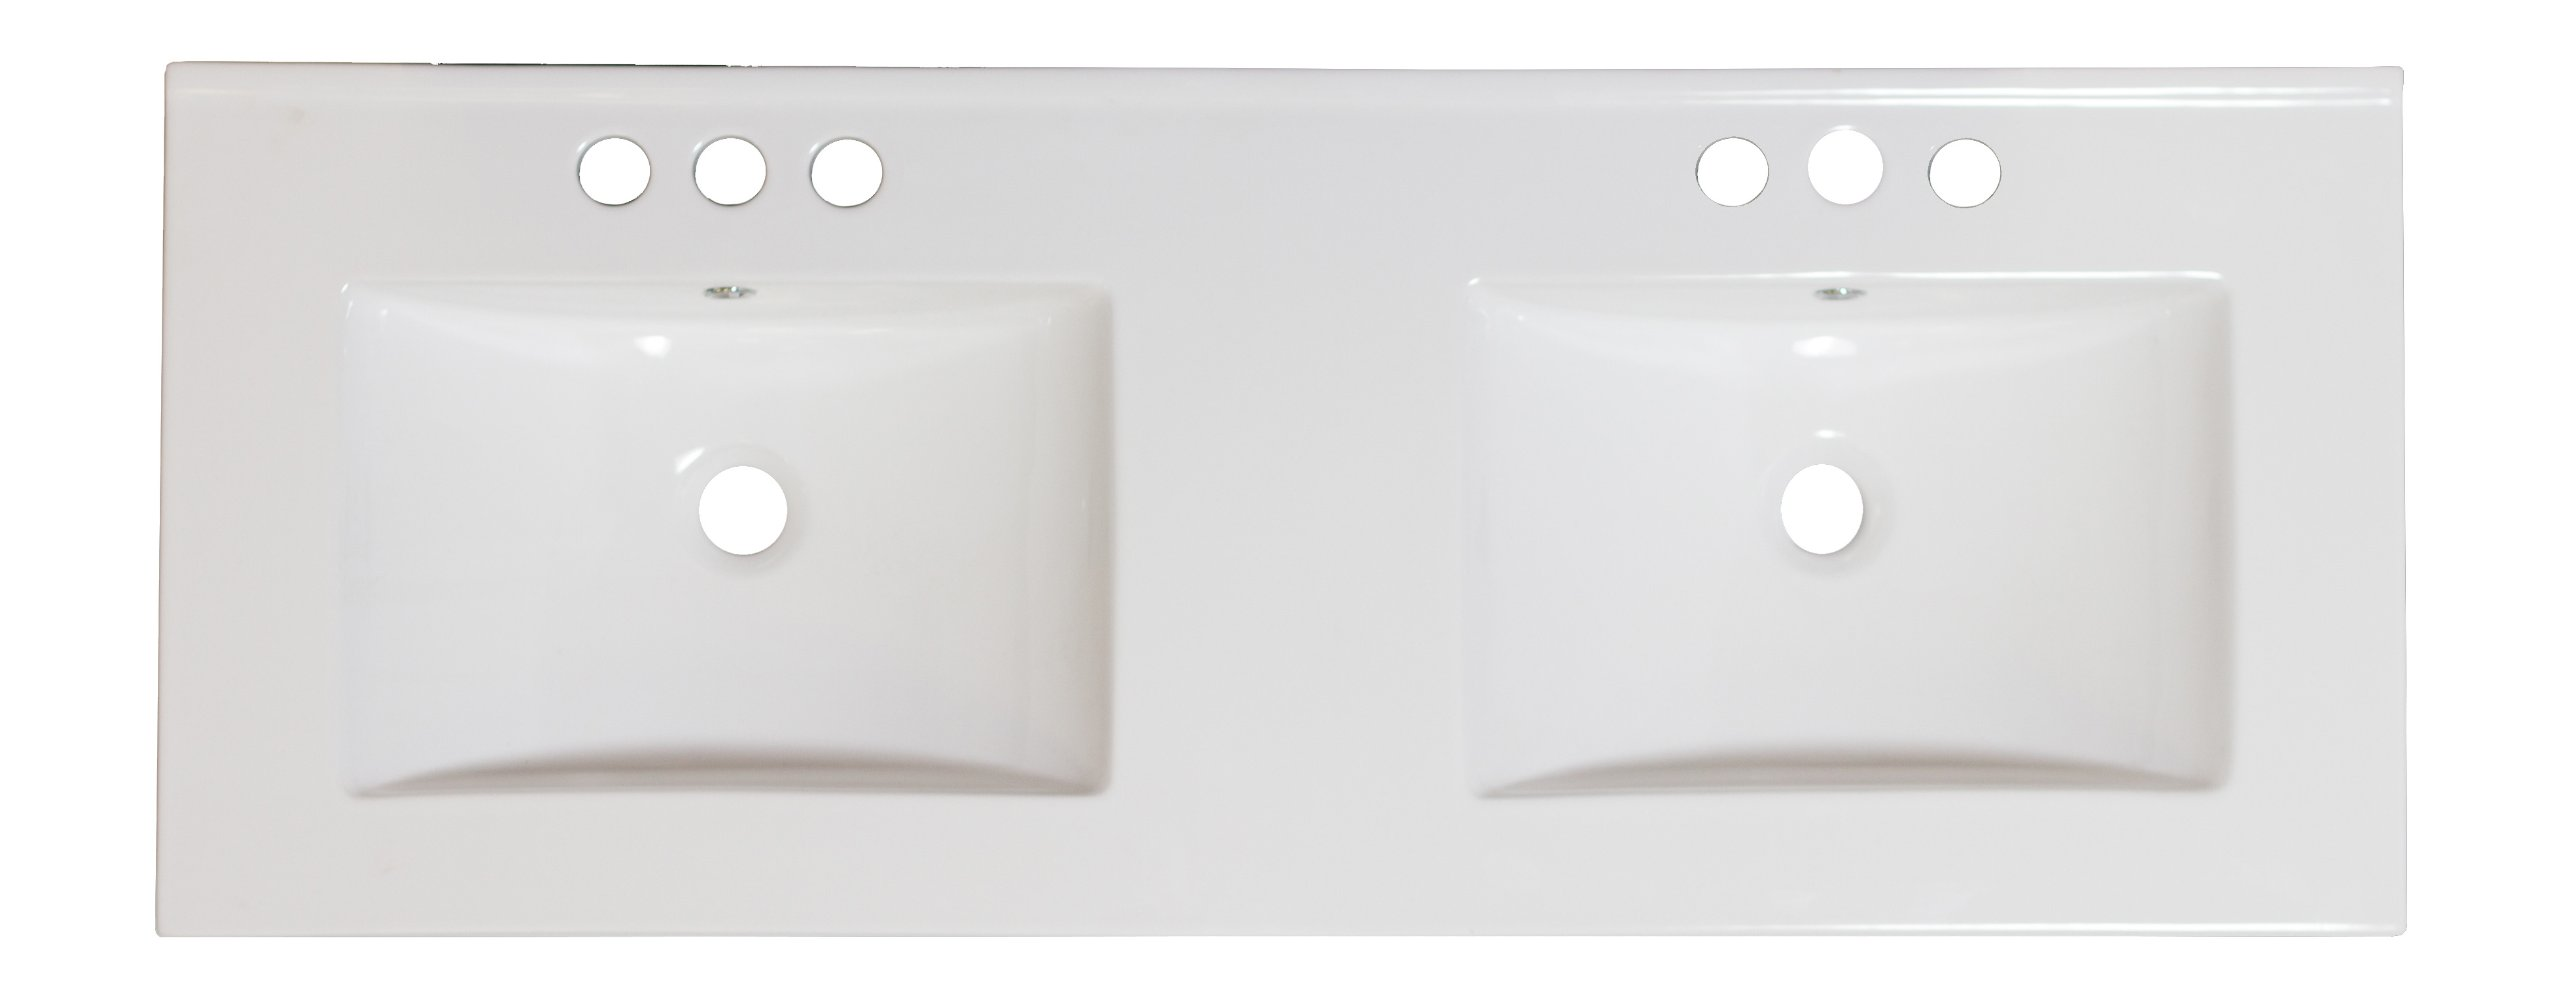 American Imaginations 603   48-Inch W X 18.5-Inch D Double Sink White Ceramic Top for 4-Inch  Off Center Faucet Installation by American Imaginations